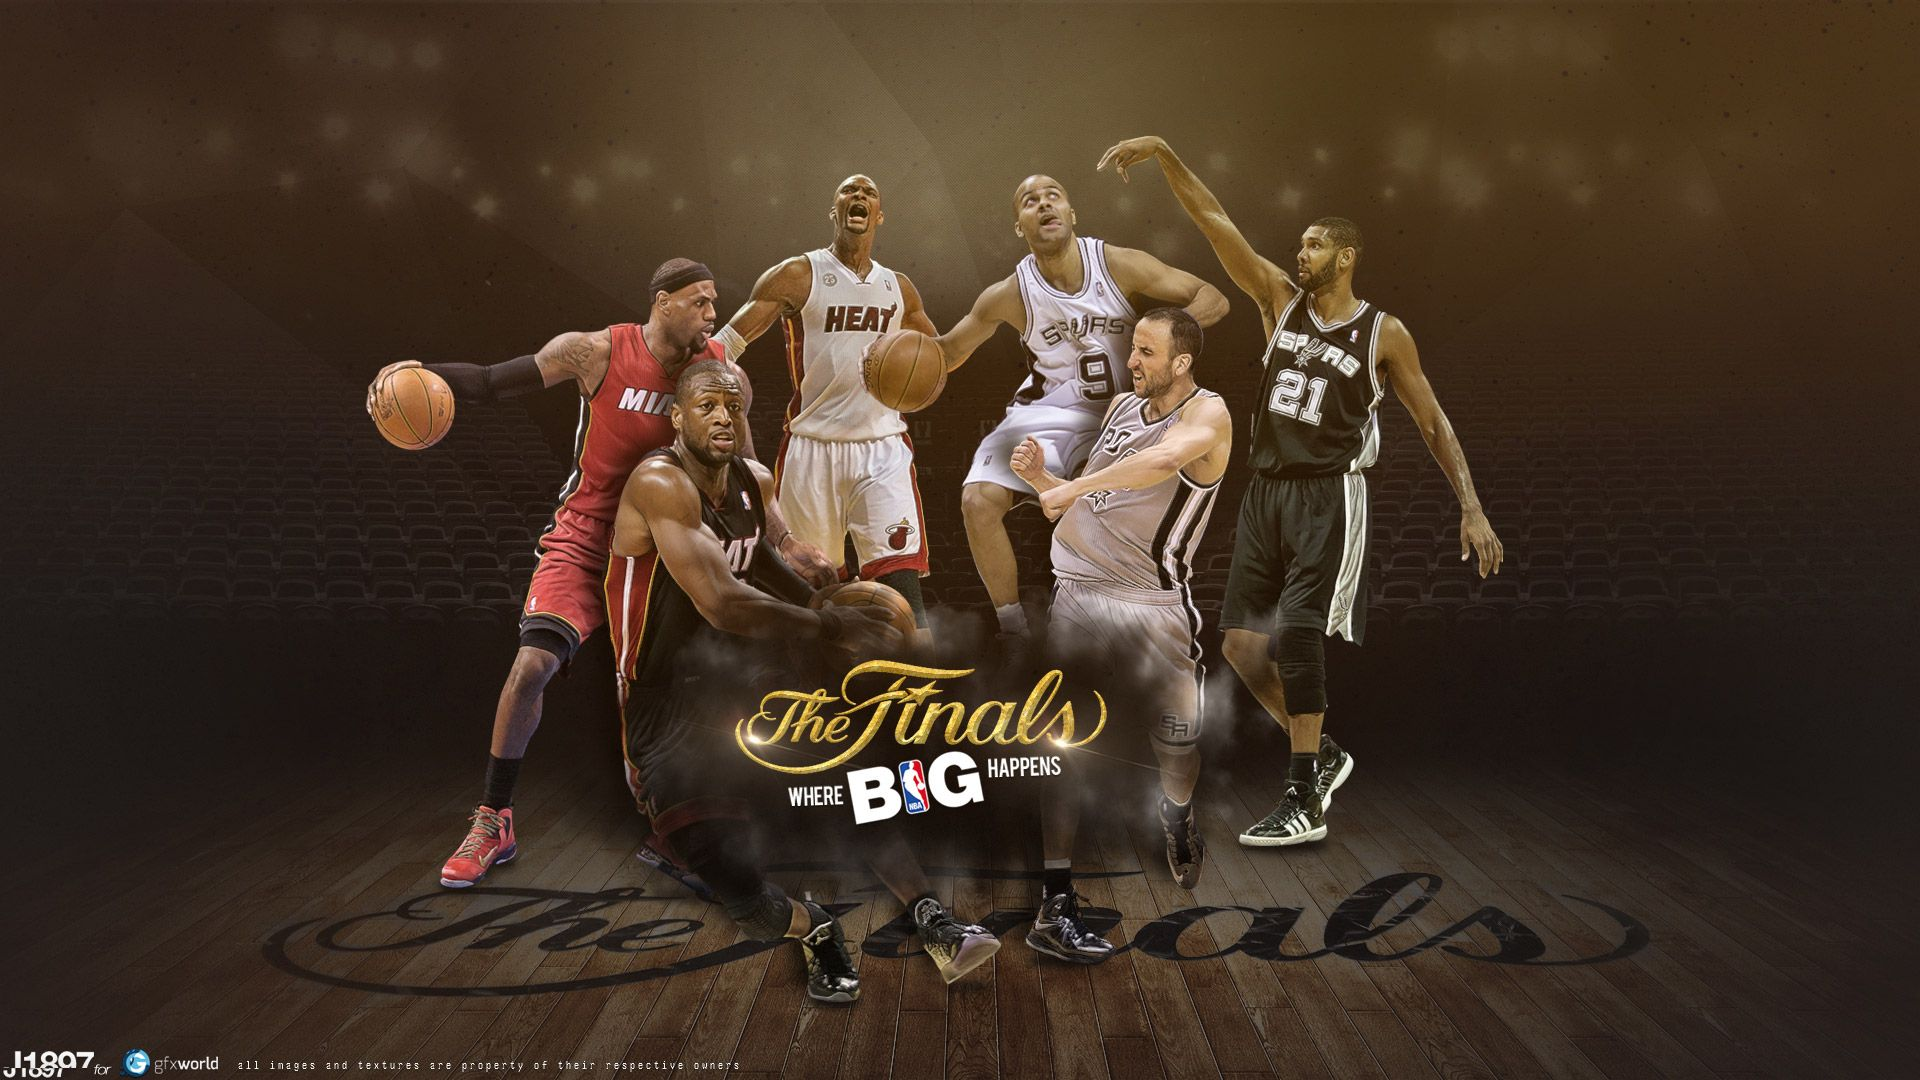 Undefined wallpaper nba 48 wallpapers adorable wallpapers undefined wallpaper nba 48 wallpapers adorable wallpapers voltagebd Choice Image